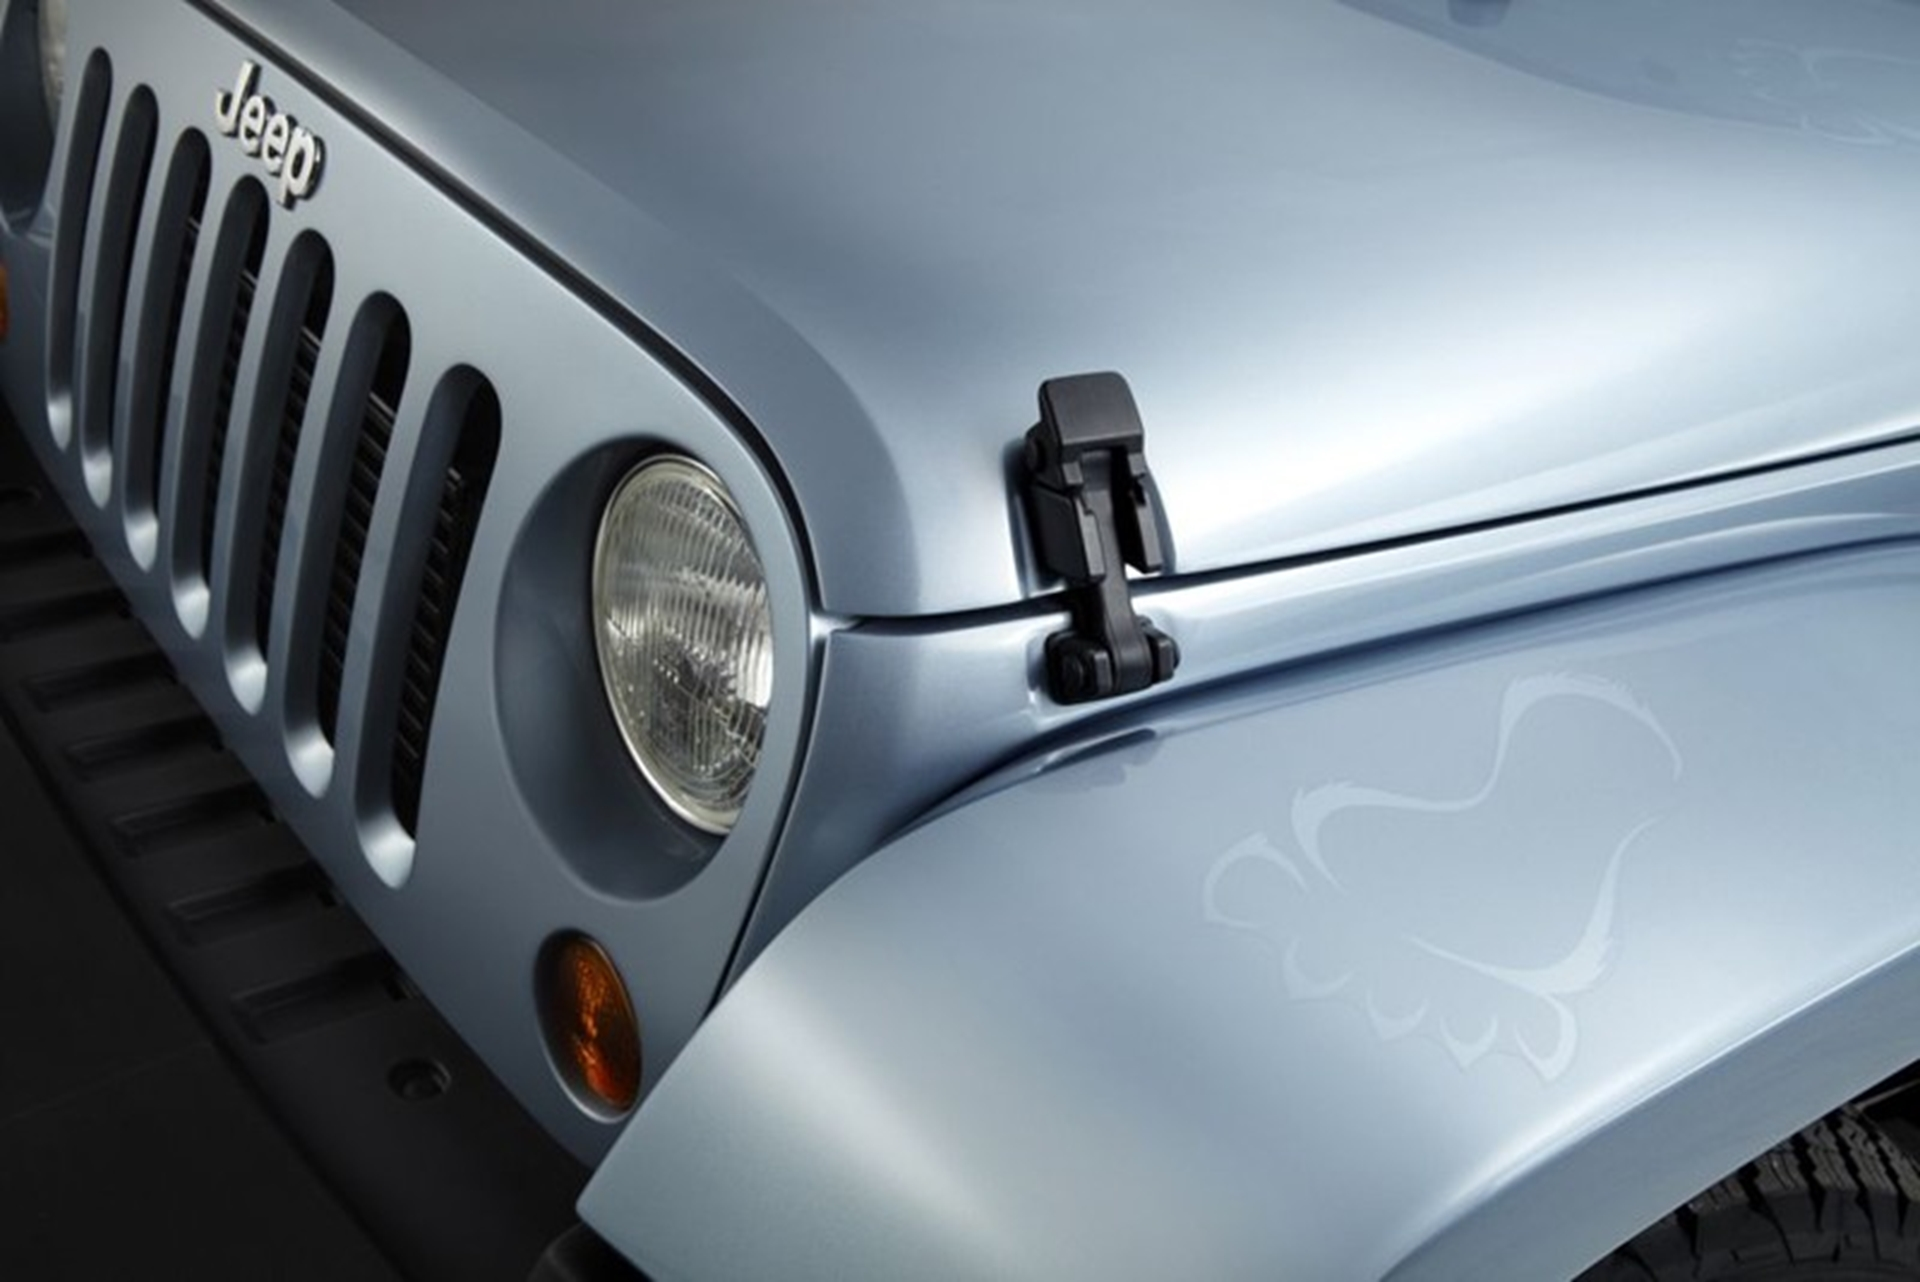 Jeep Wrangler 2012 front